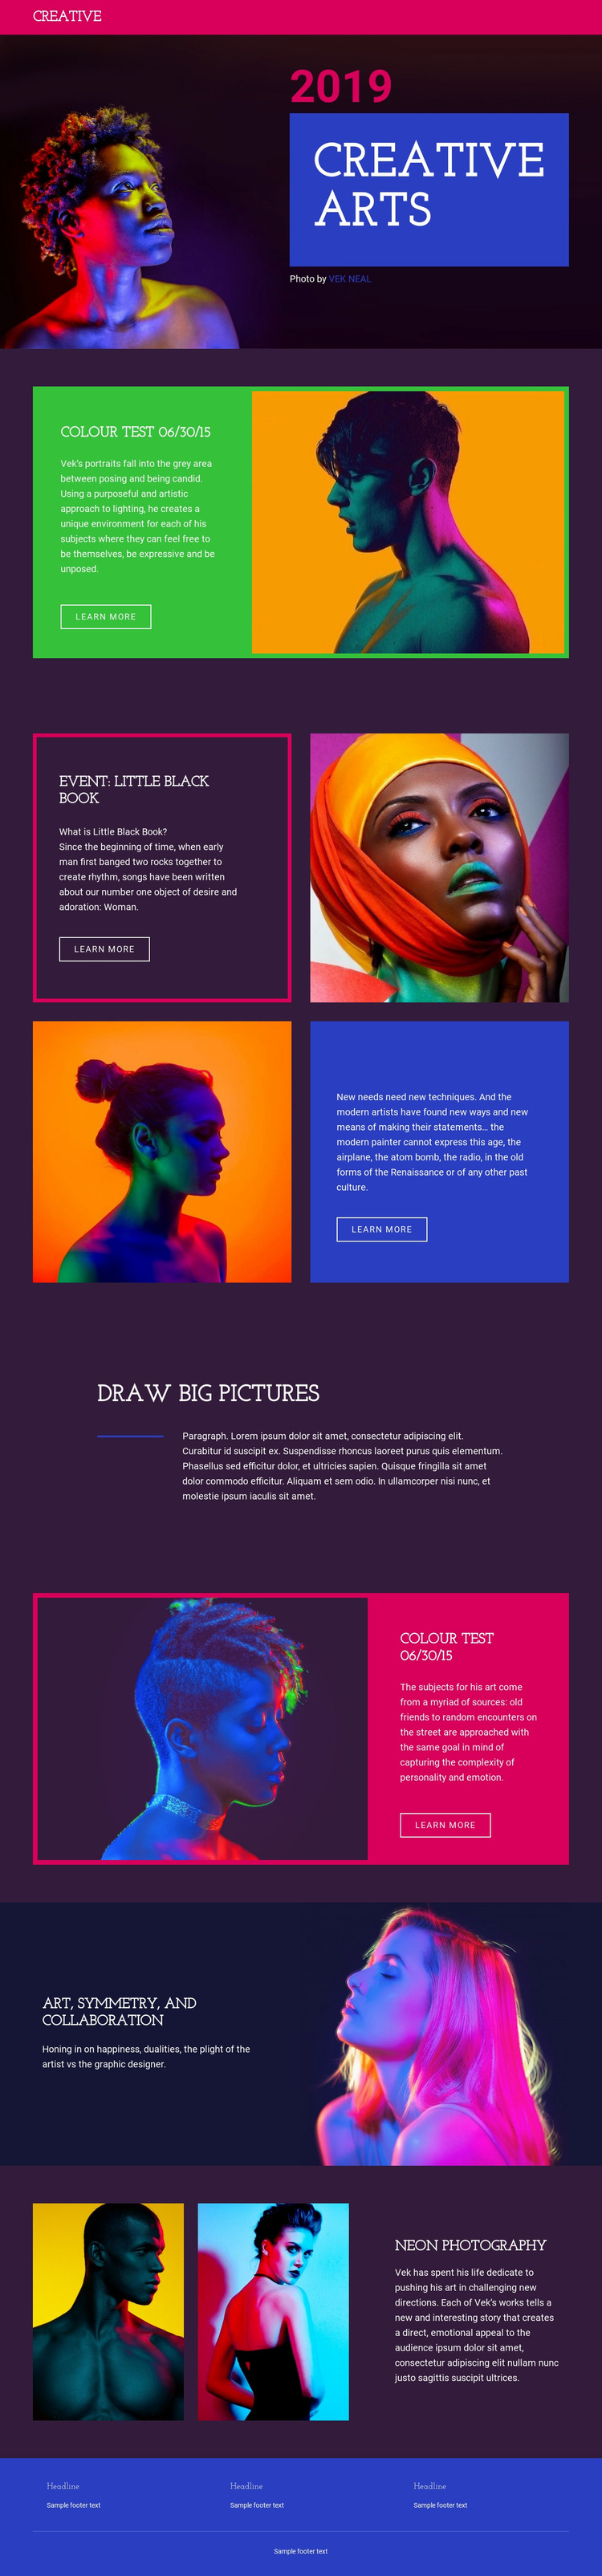 Limited-edition photography Website Builder